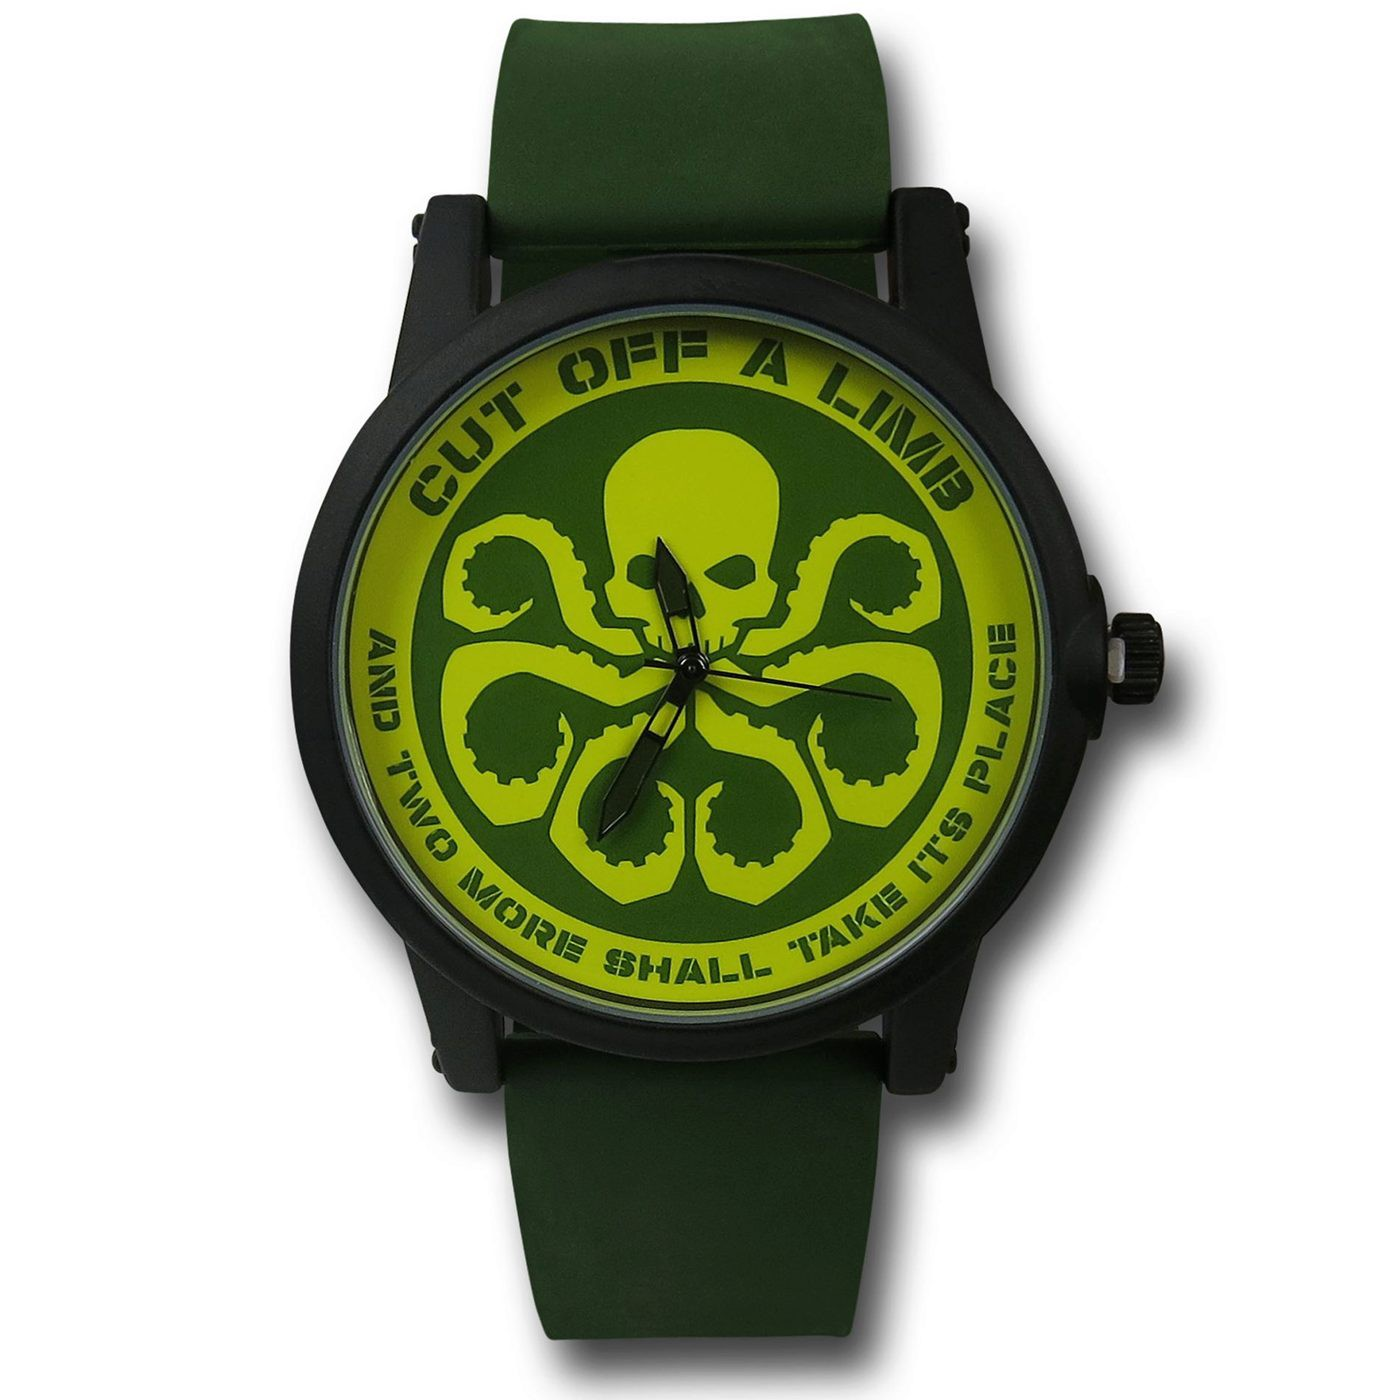 Hydra Watch with Silicone Band